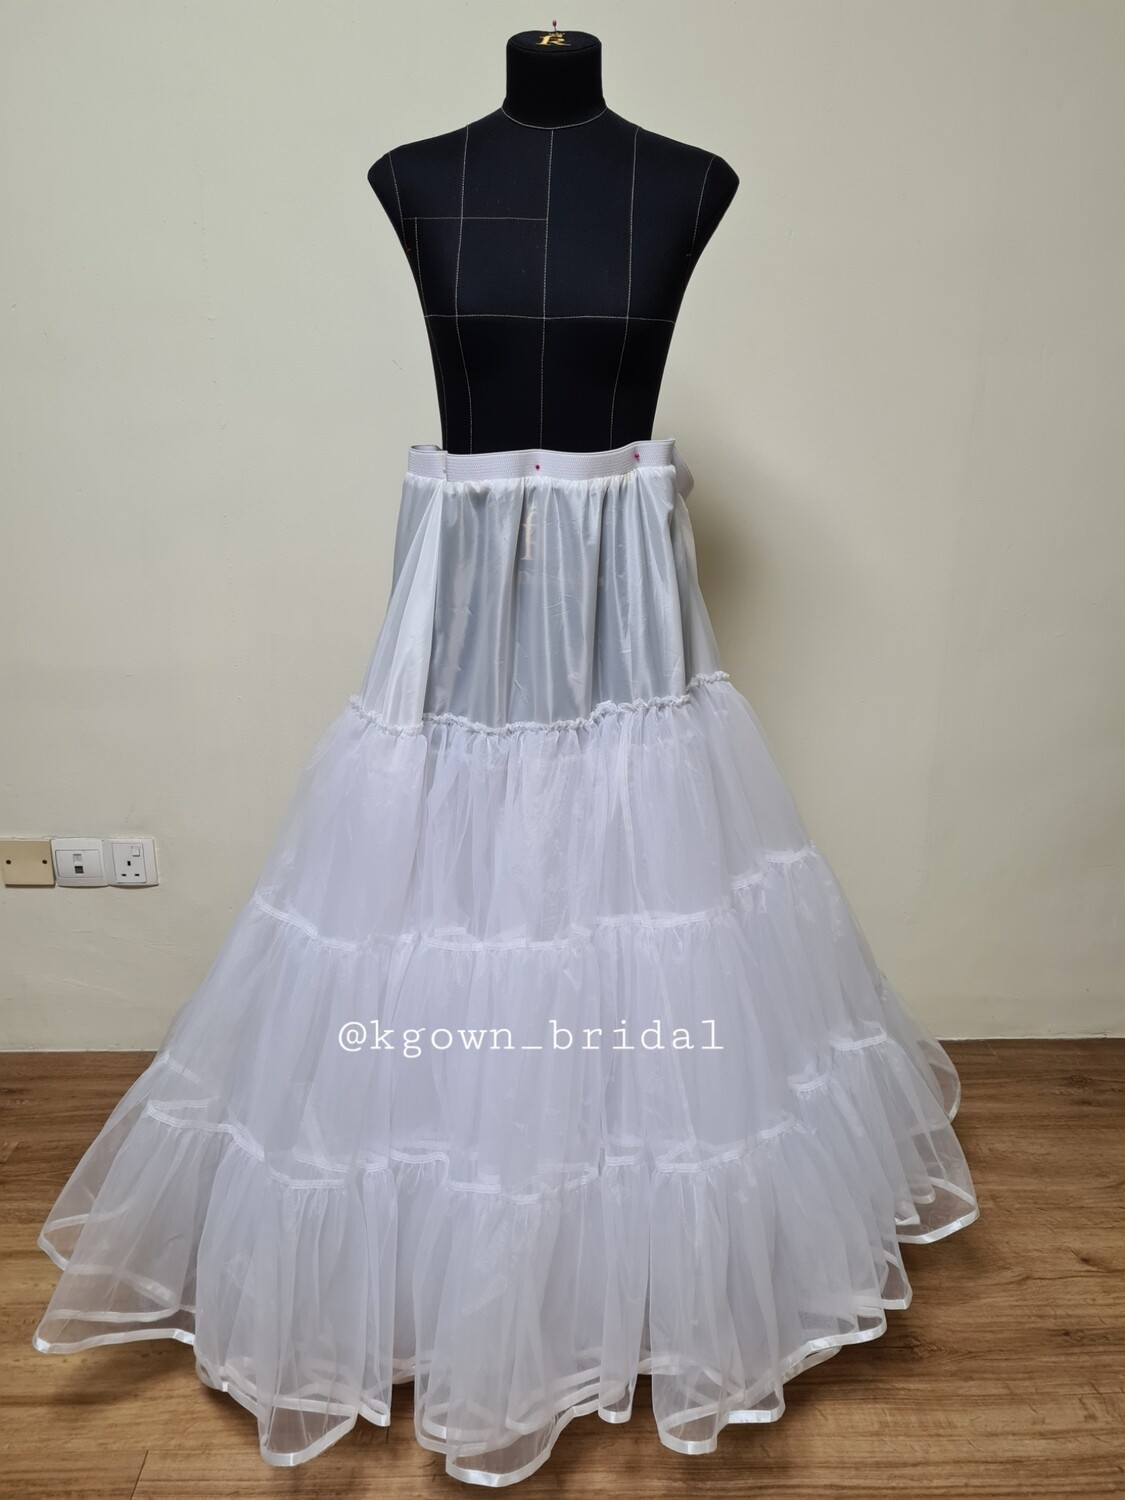 Customised plus size petticoat with organza mesh